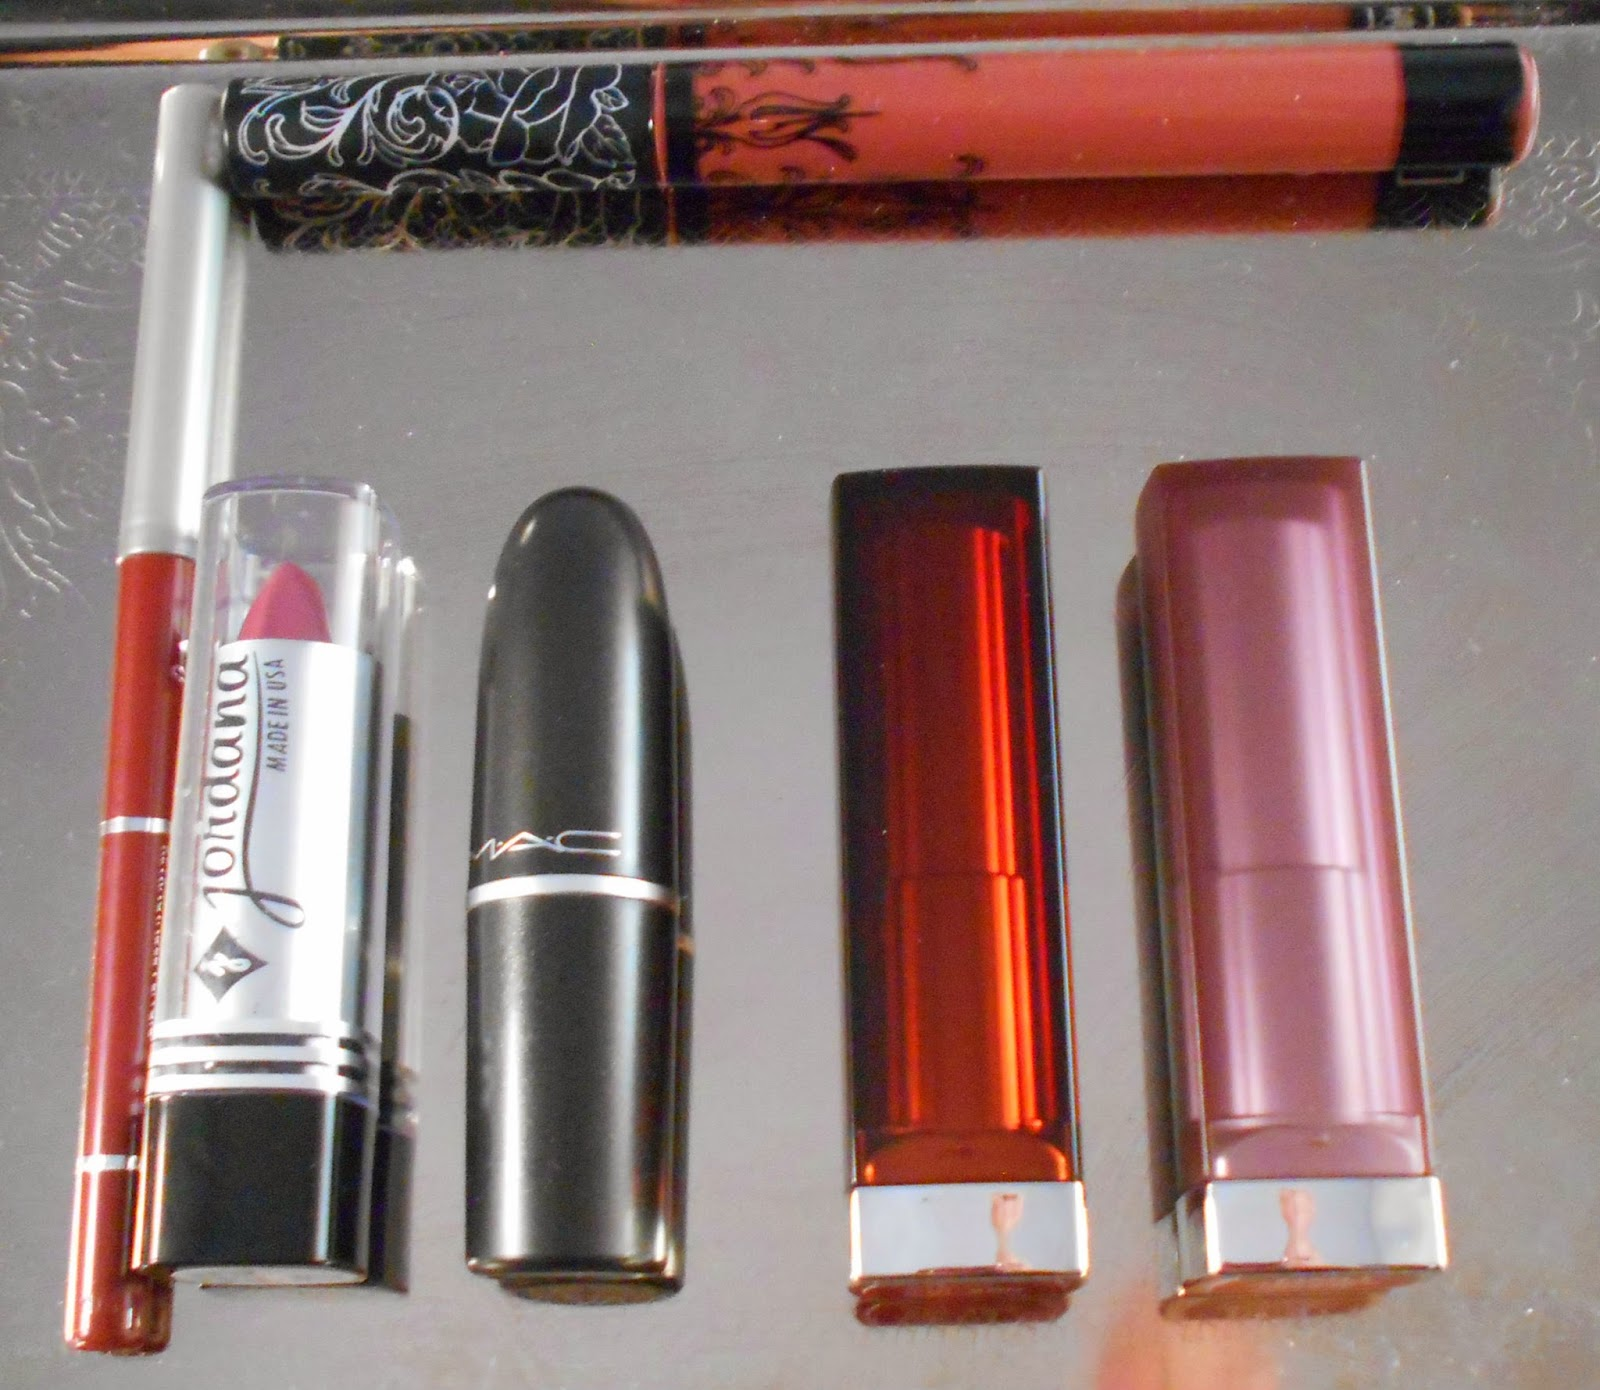 Alternatives To Kat Von D Everlasting Liquid Lipstick in Lolita